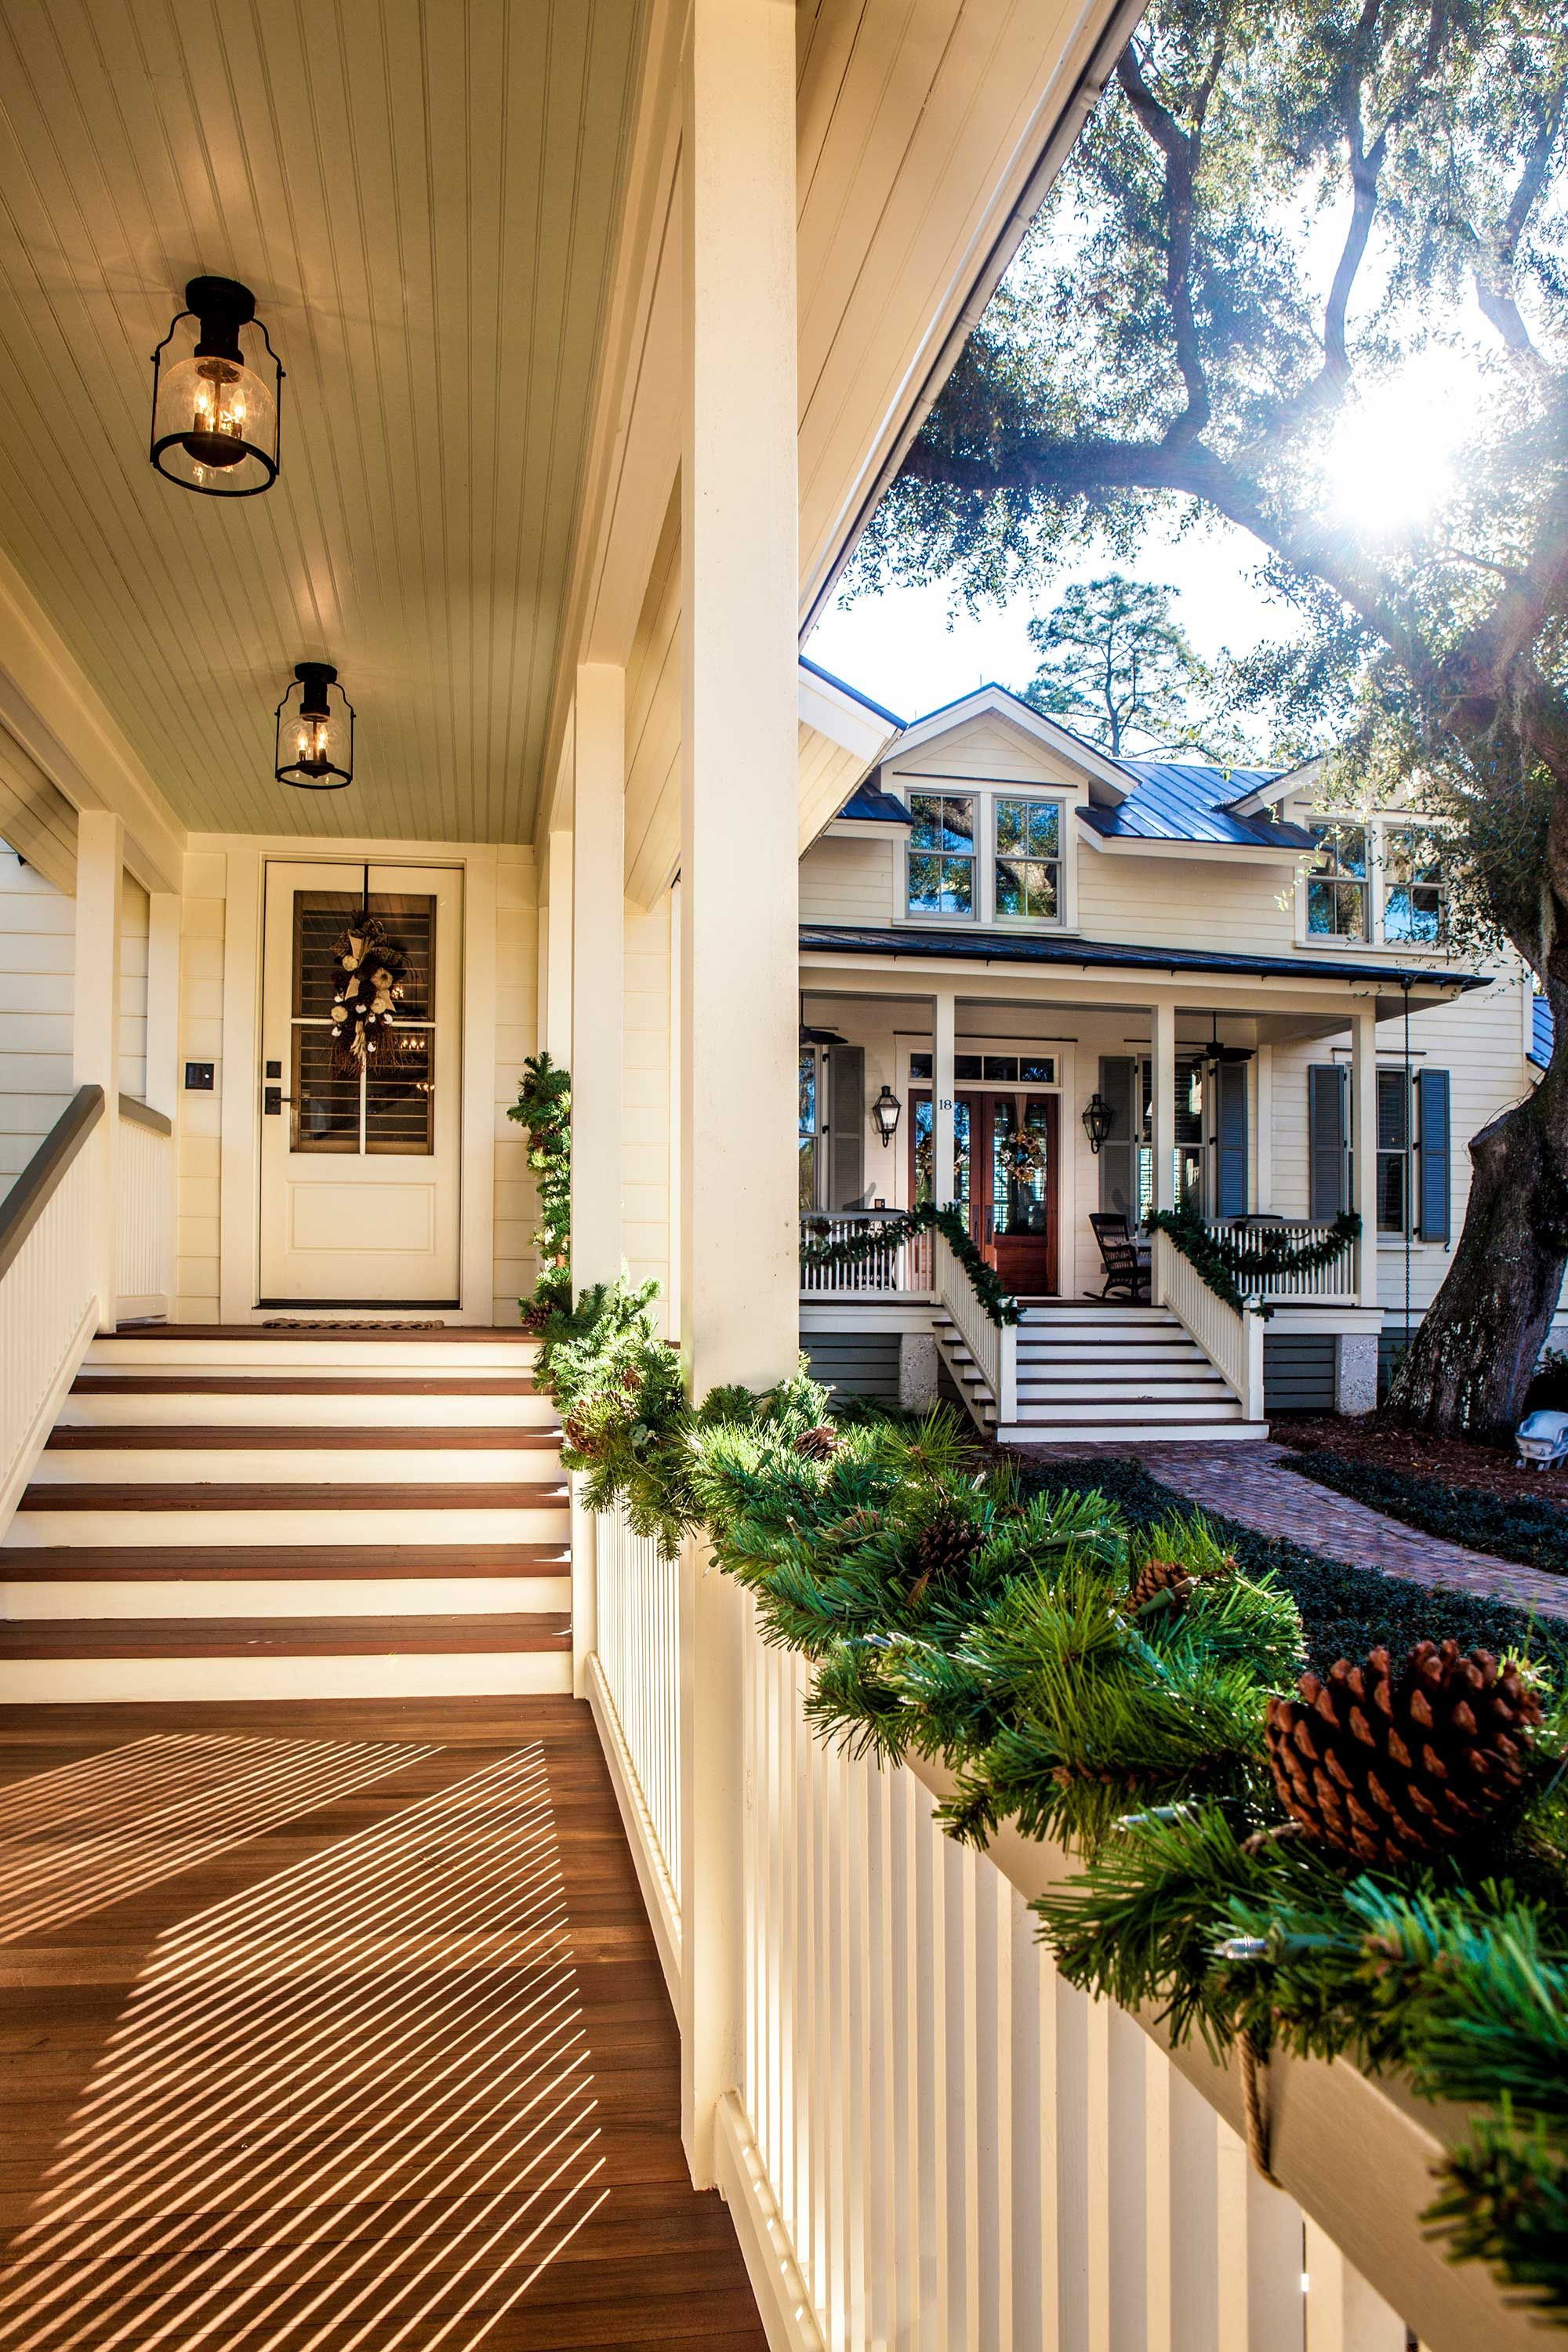 Gallery cowart groupcowart group farmhouse design modern building  new home also best beautiful homes images diy ideas for rh pinterest